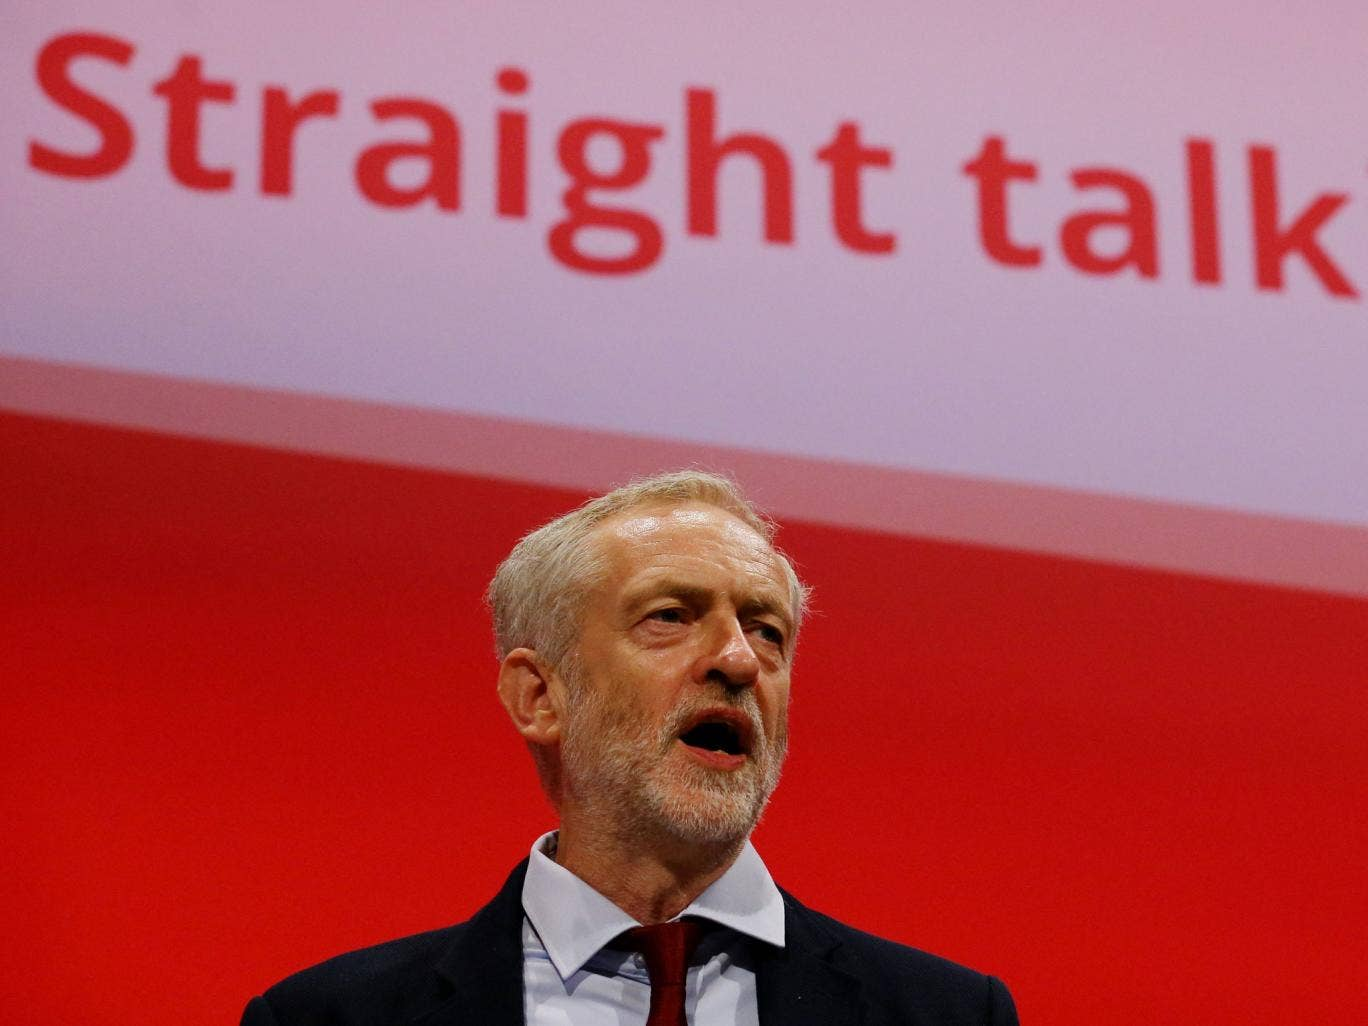 Labour has seen a significant membership surge since its leadership election